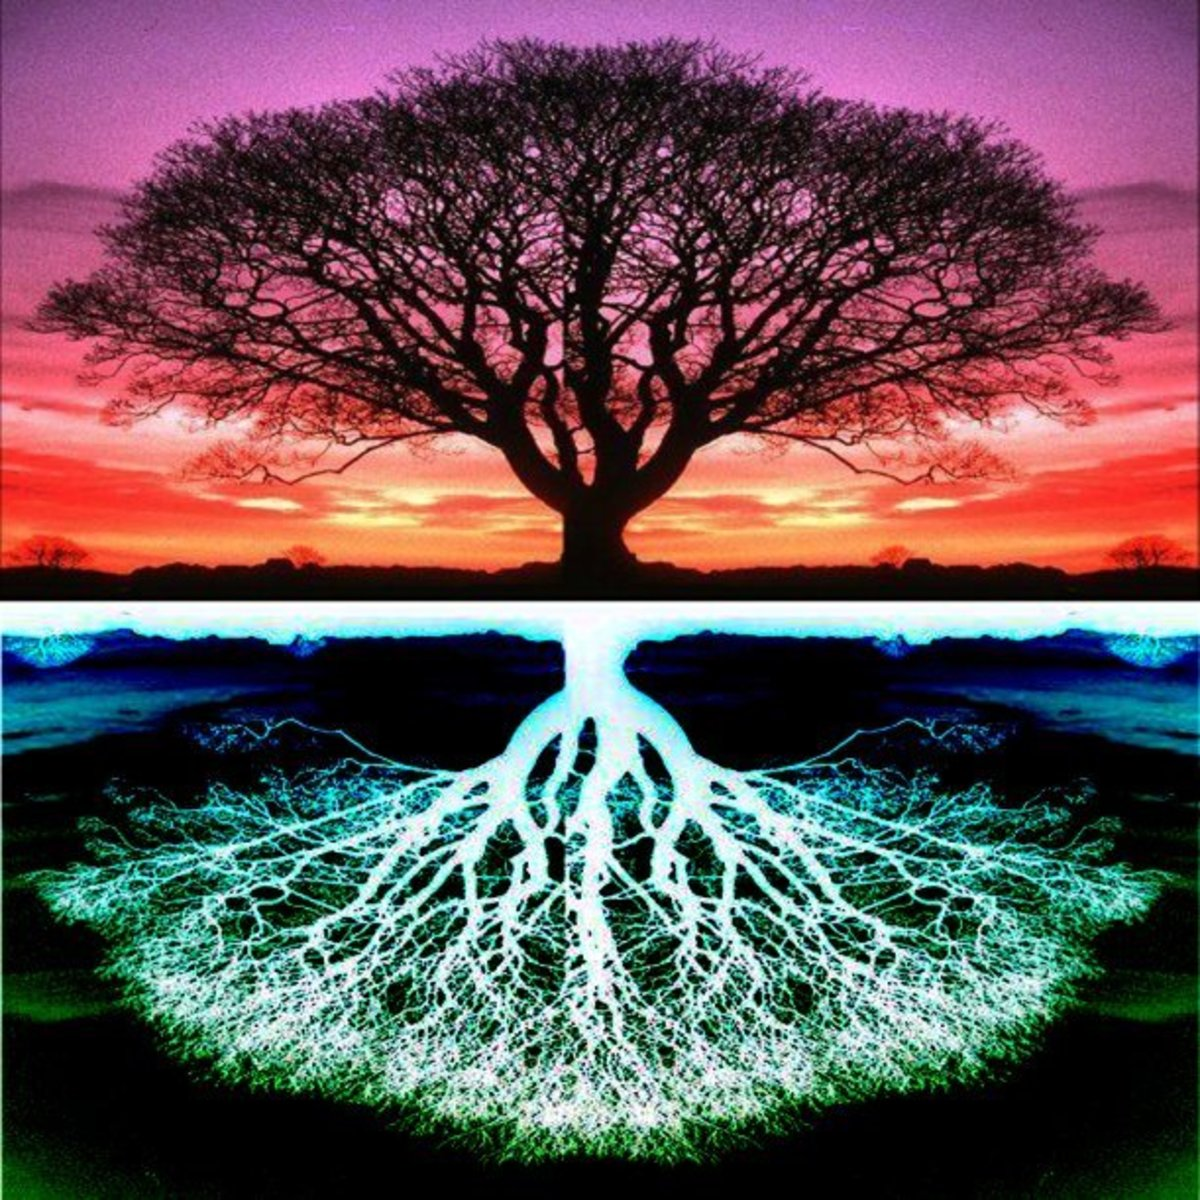 The One Tree, a Poem